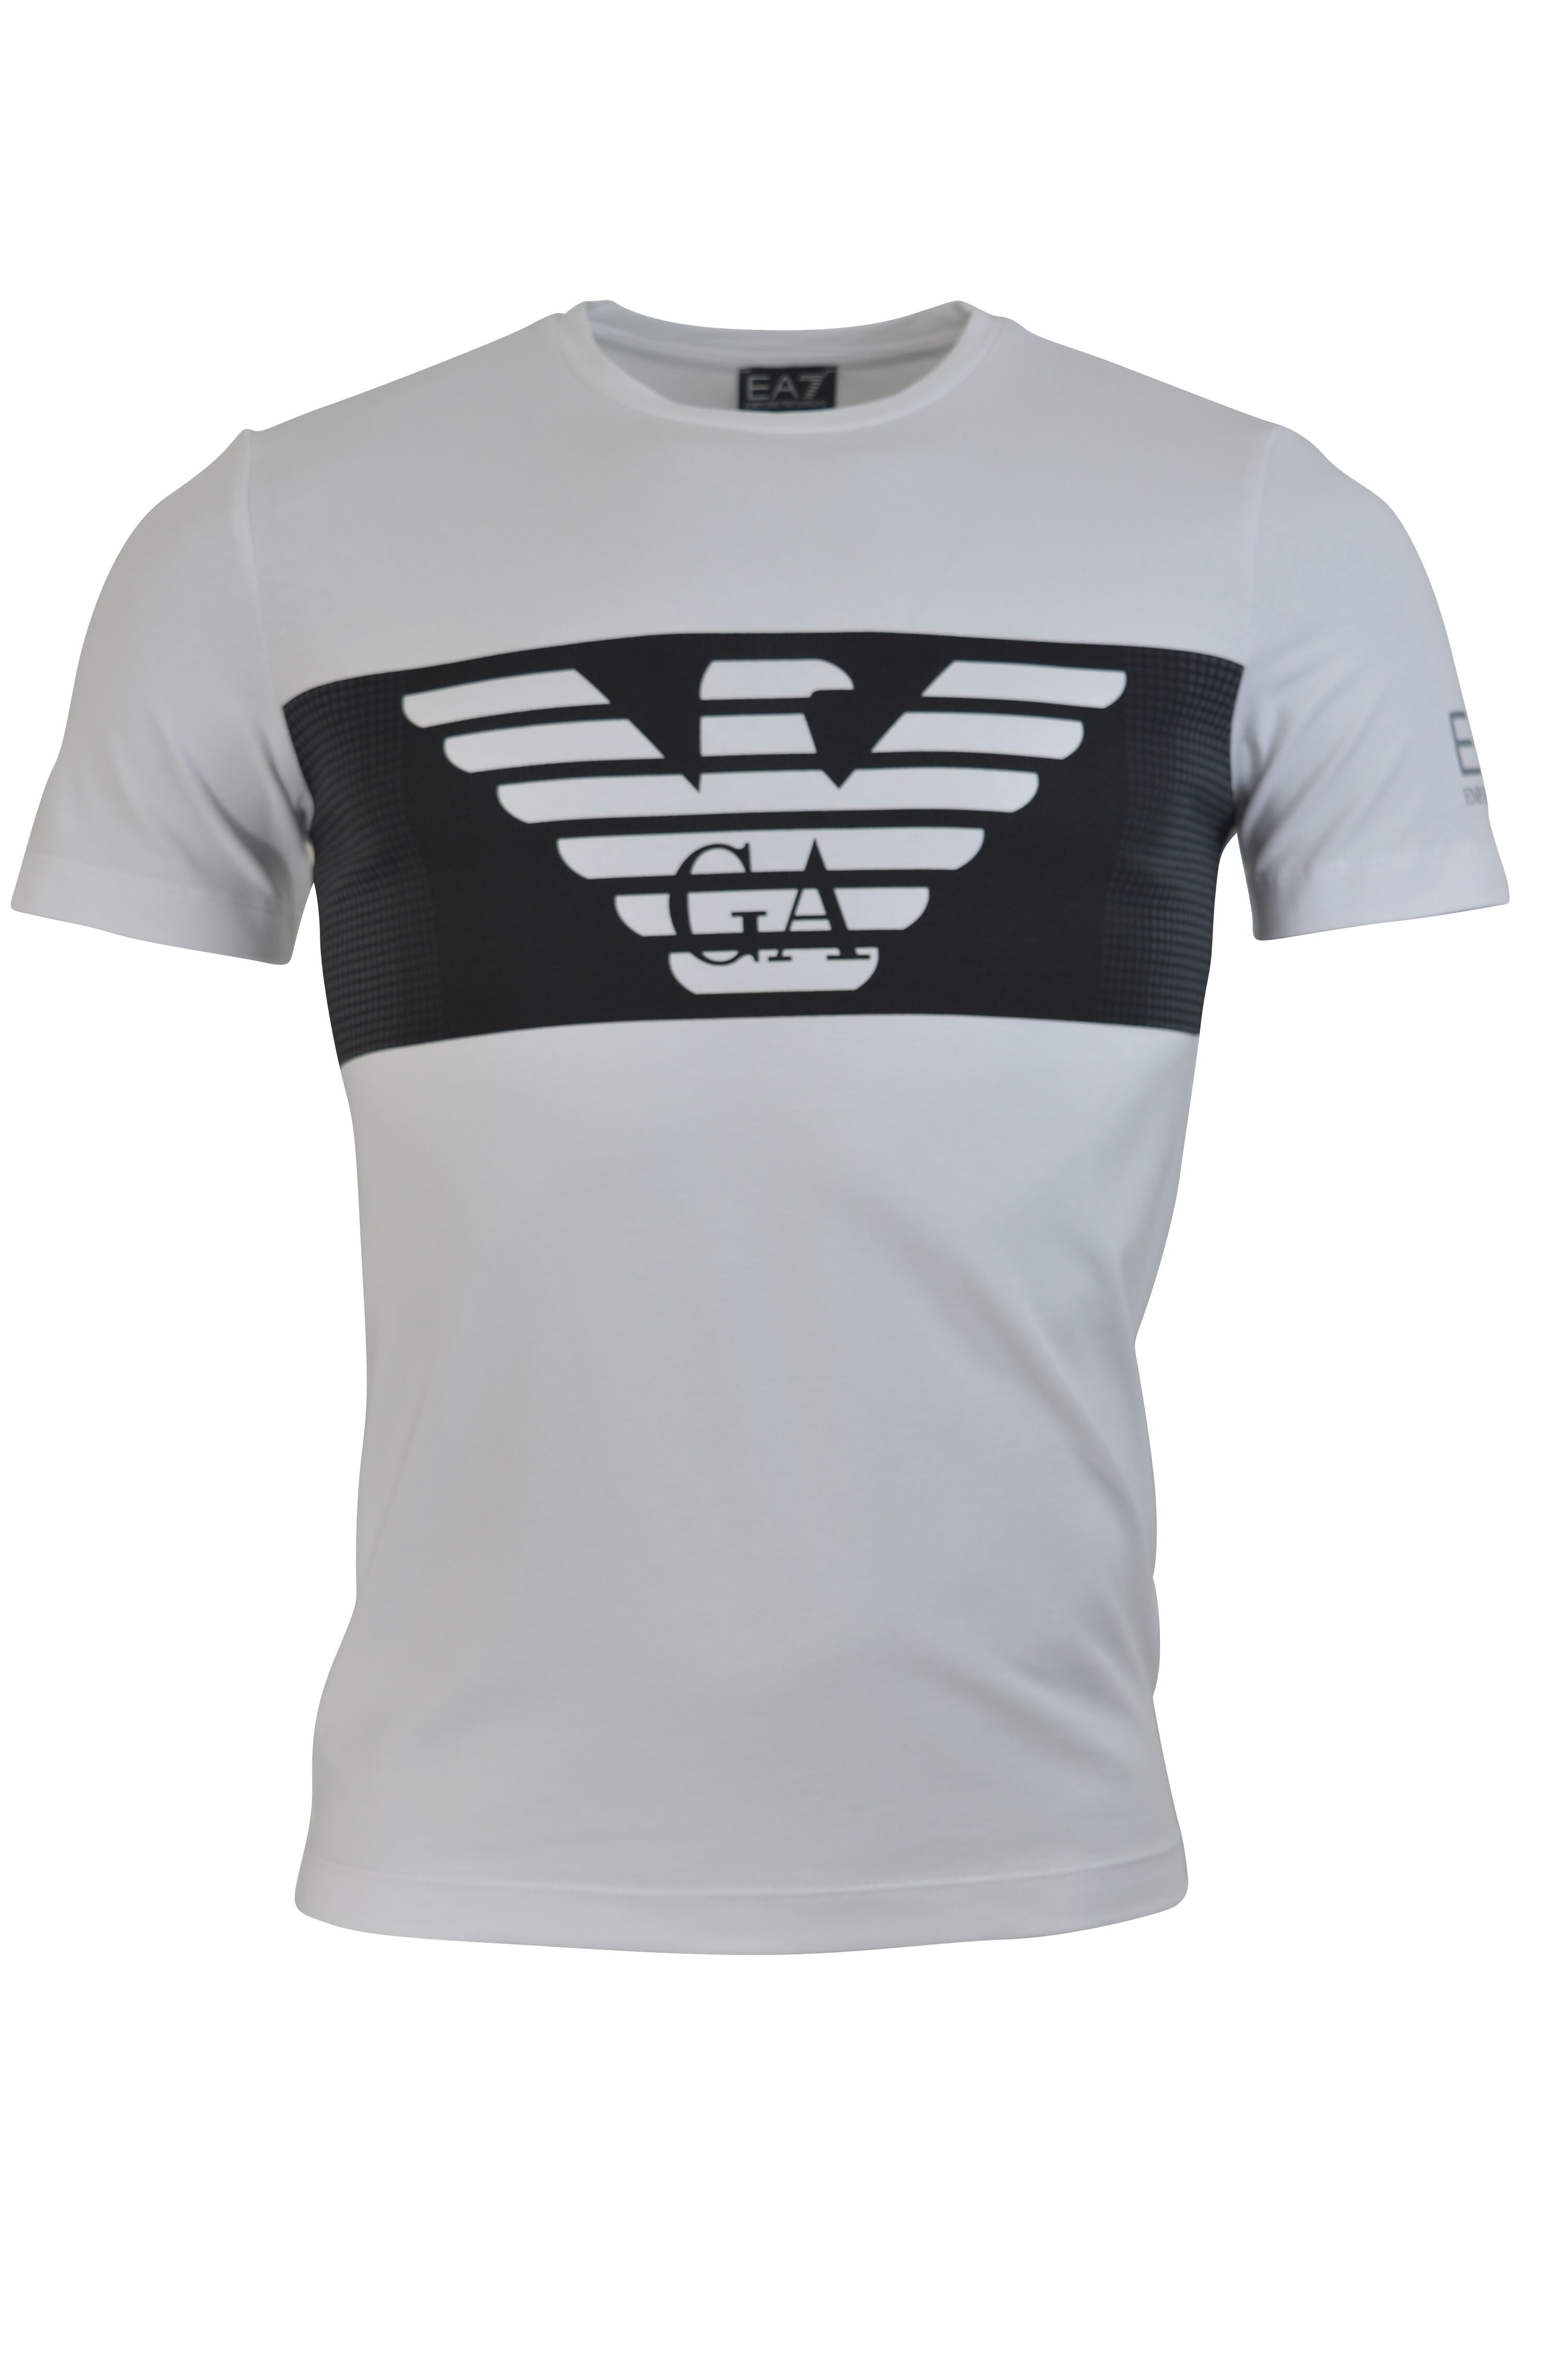 Men's T-shirt Black Short sleeves Crew neck Printed Eagle emblem with G A in grey tiones and EA7 logo in gold on sleeve 95% Cotton 5% Elastane Machine Wash